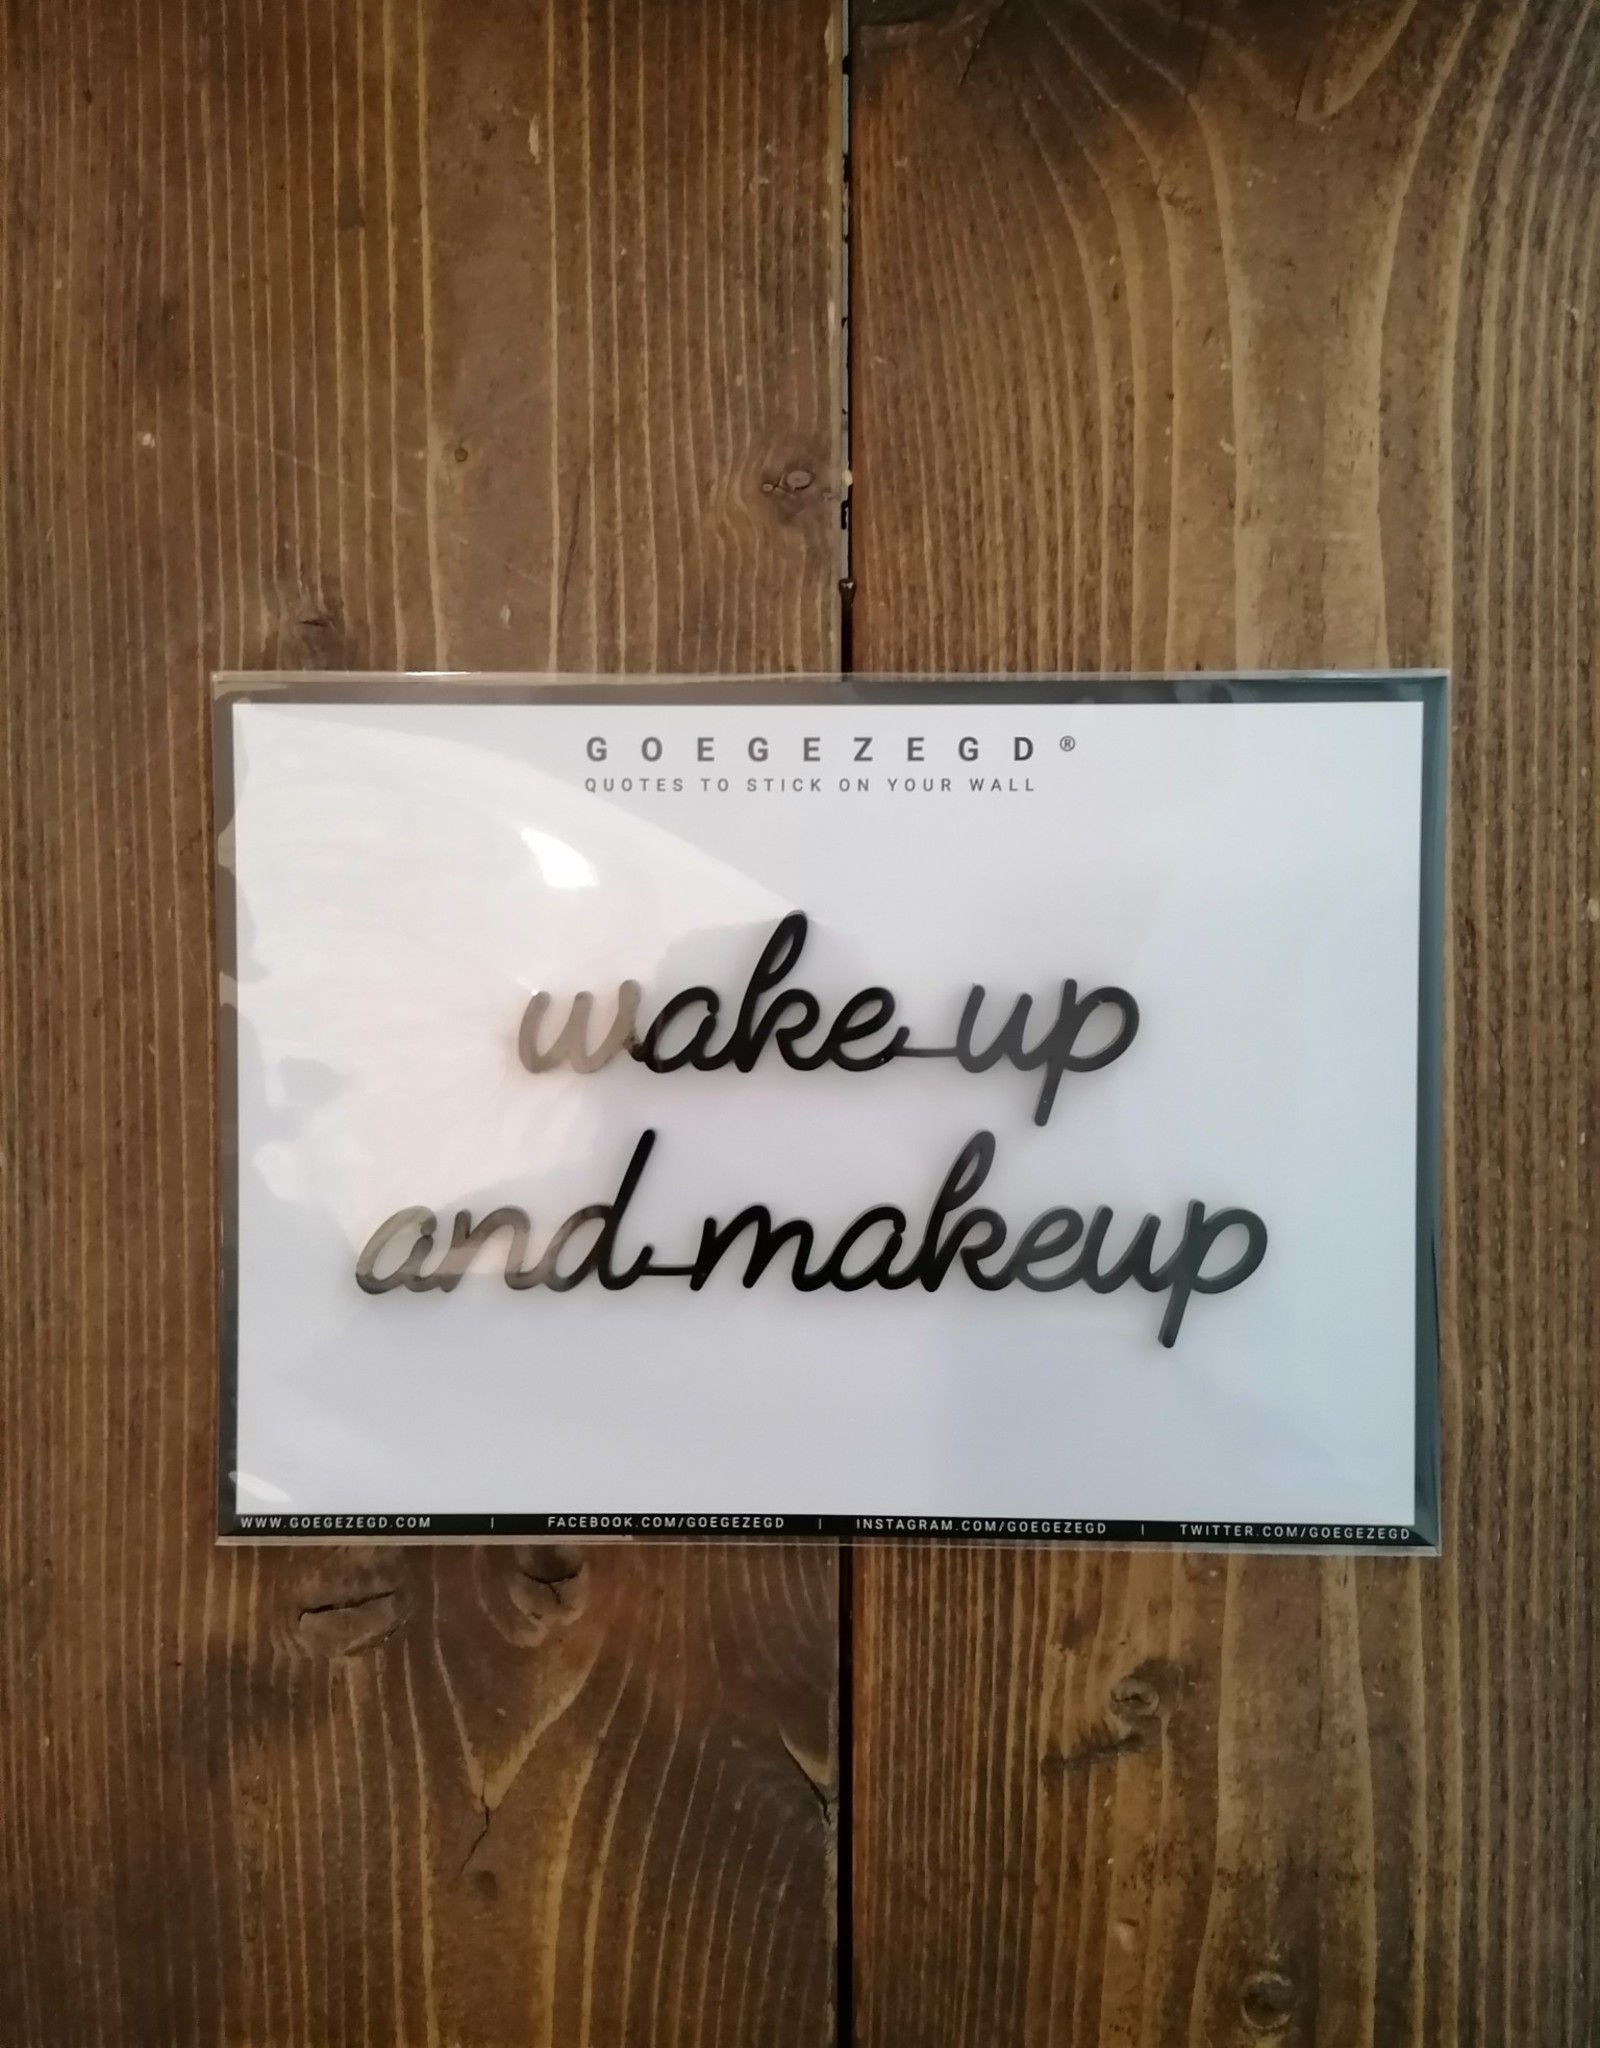 Goegezegd Goegezegd - wake up and makeup